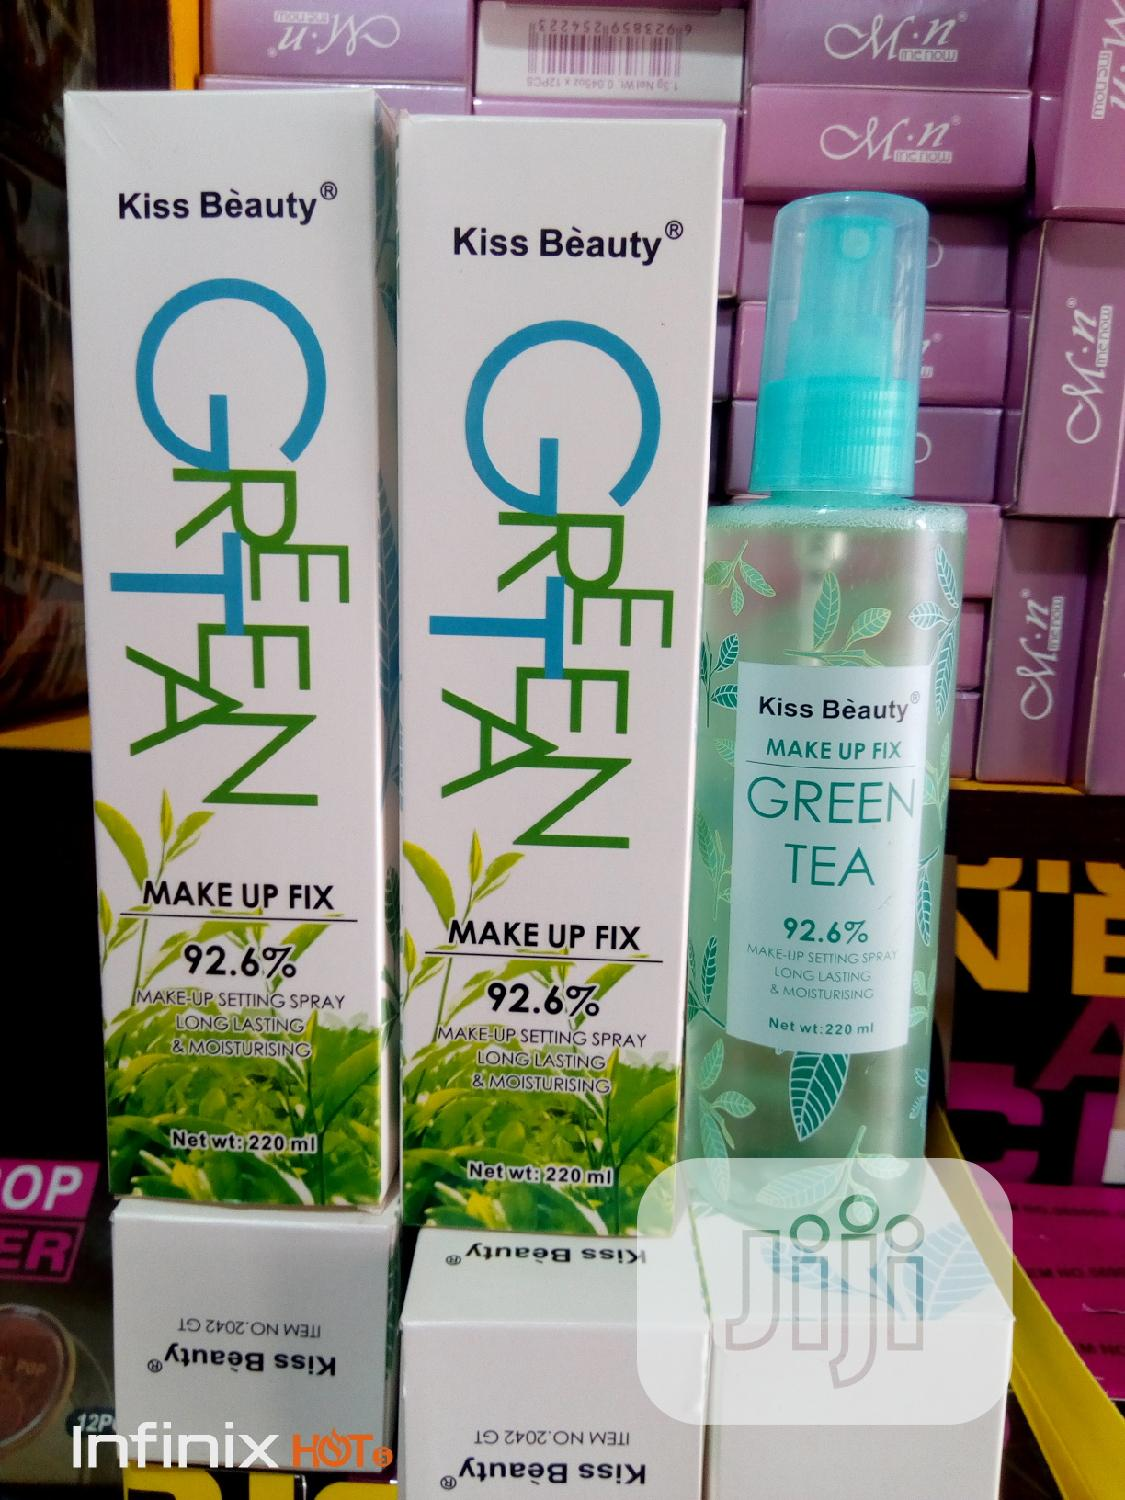 Green Tea Makeup Fix Spray